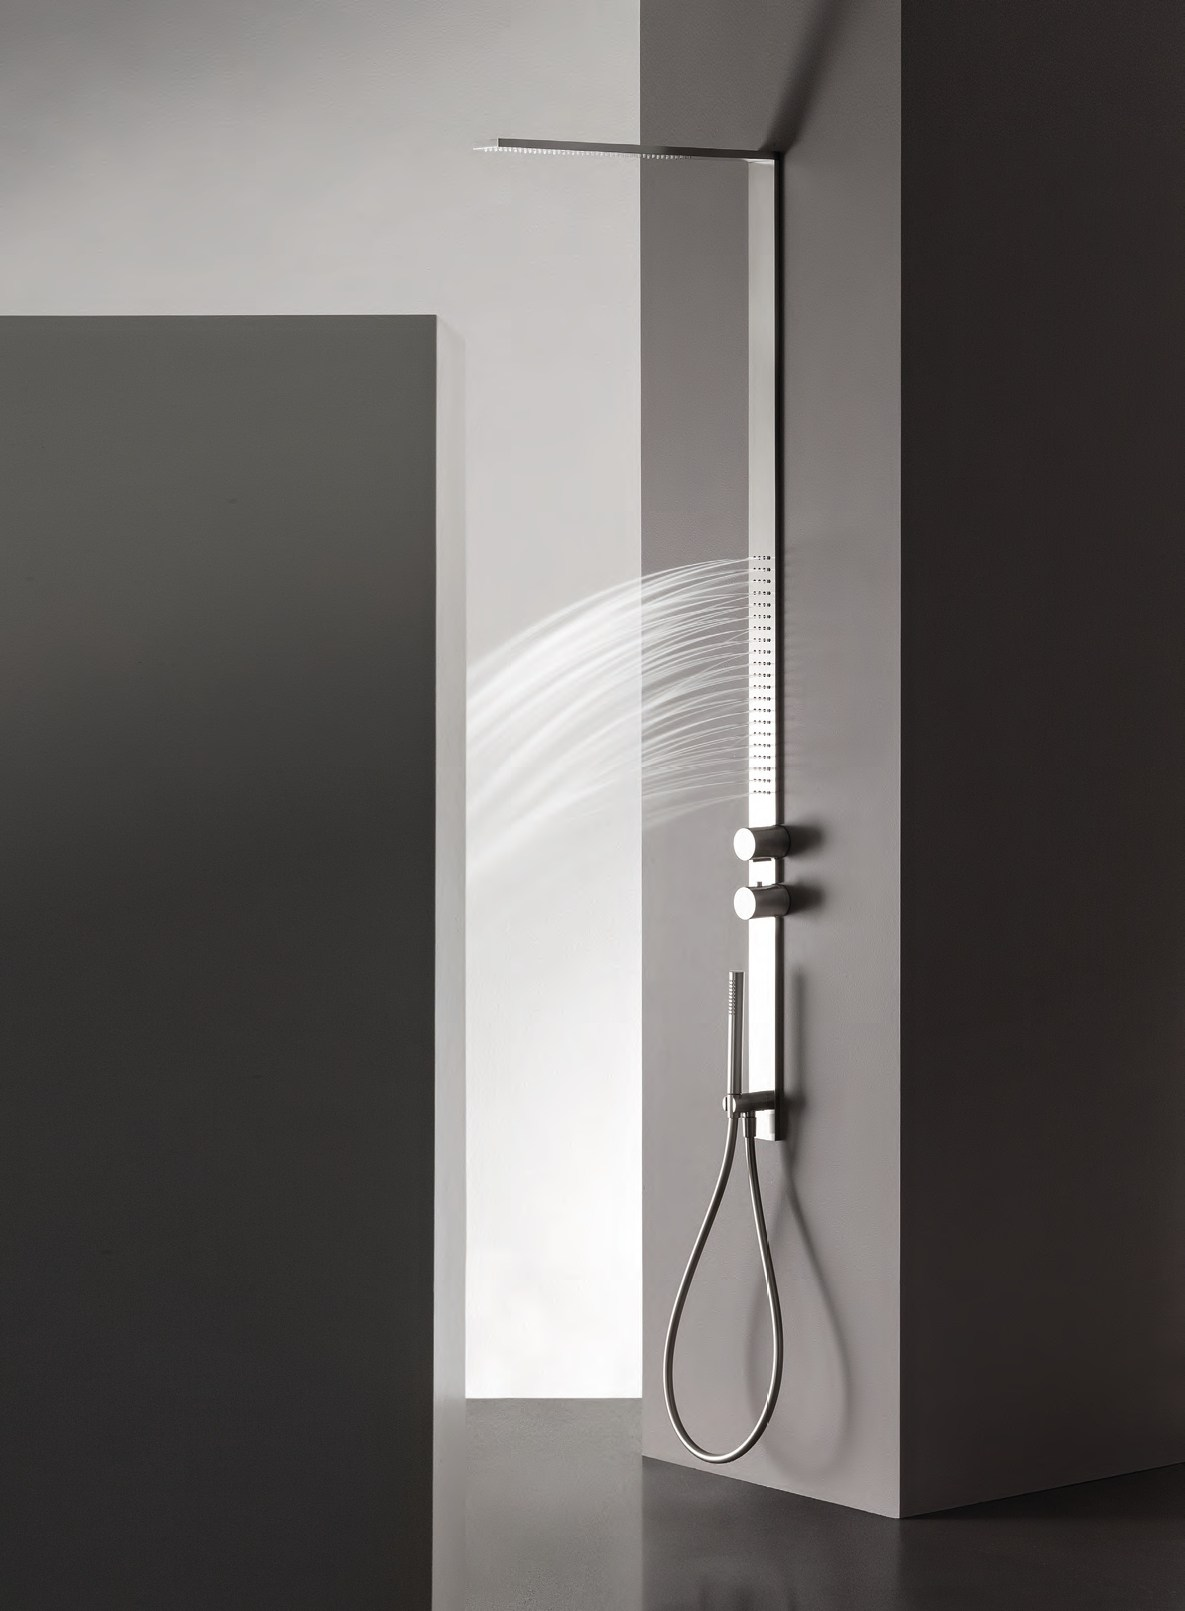 art h001 + h091 milanoslim shower